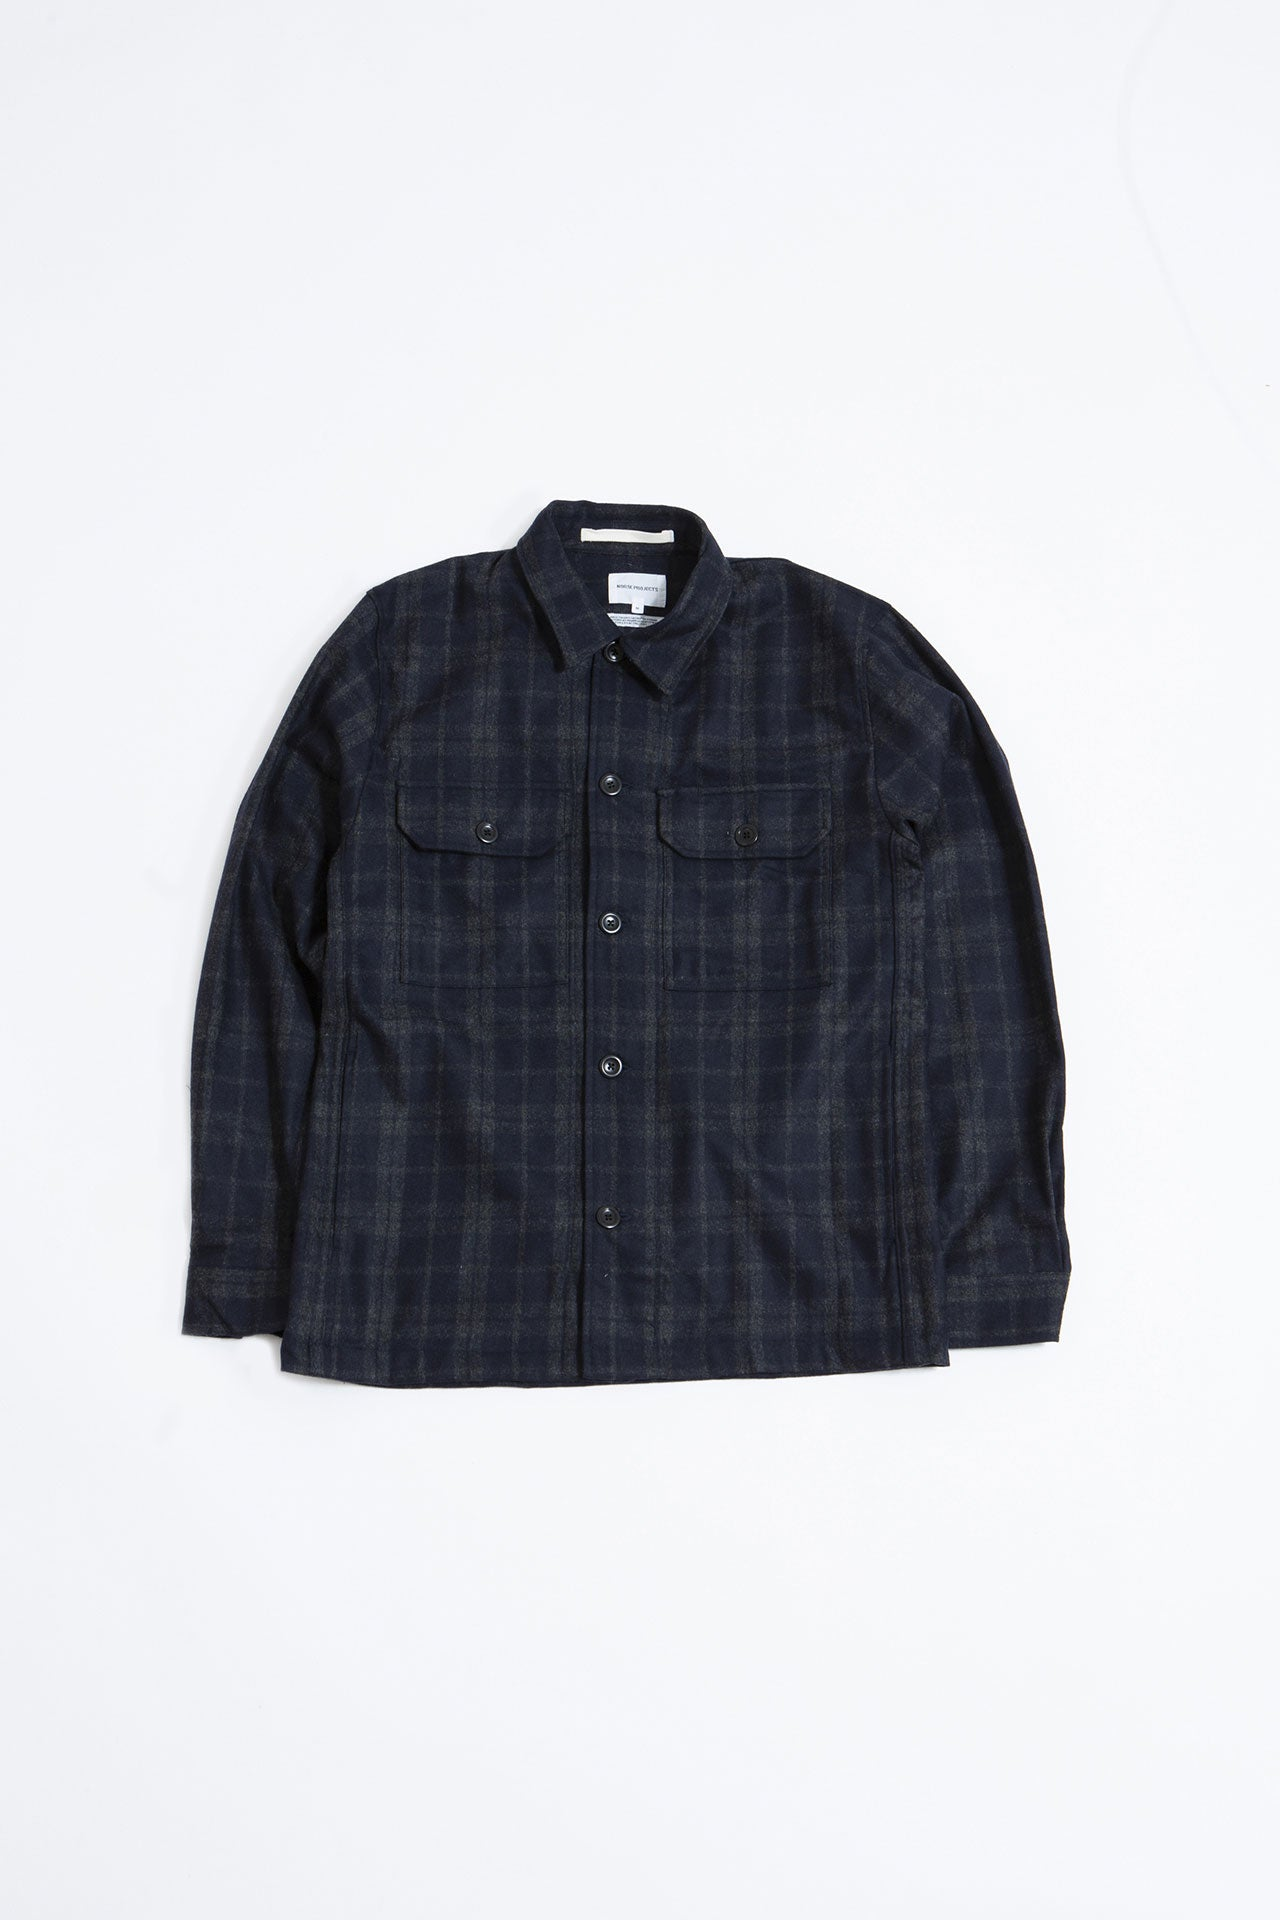 Kyle Wool shirt dark navy